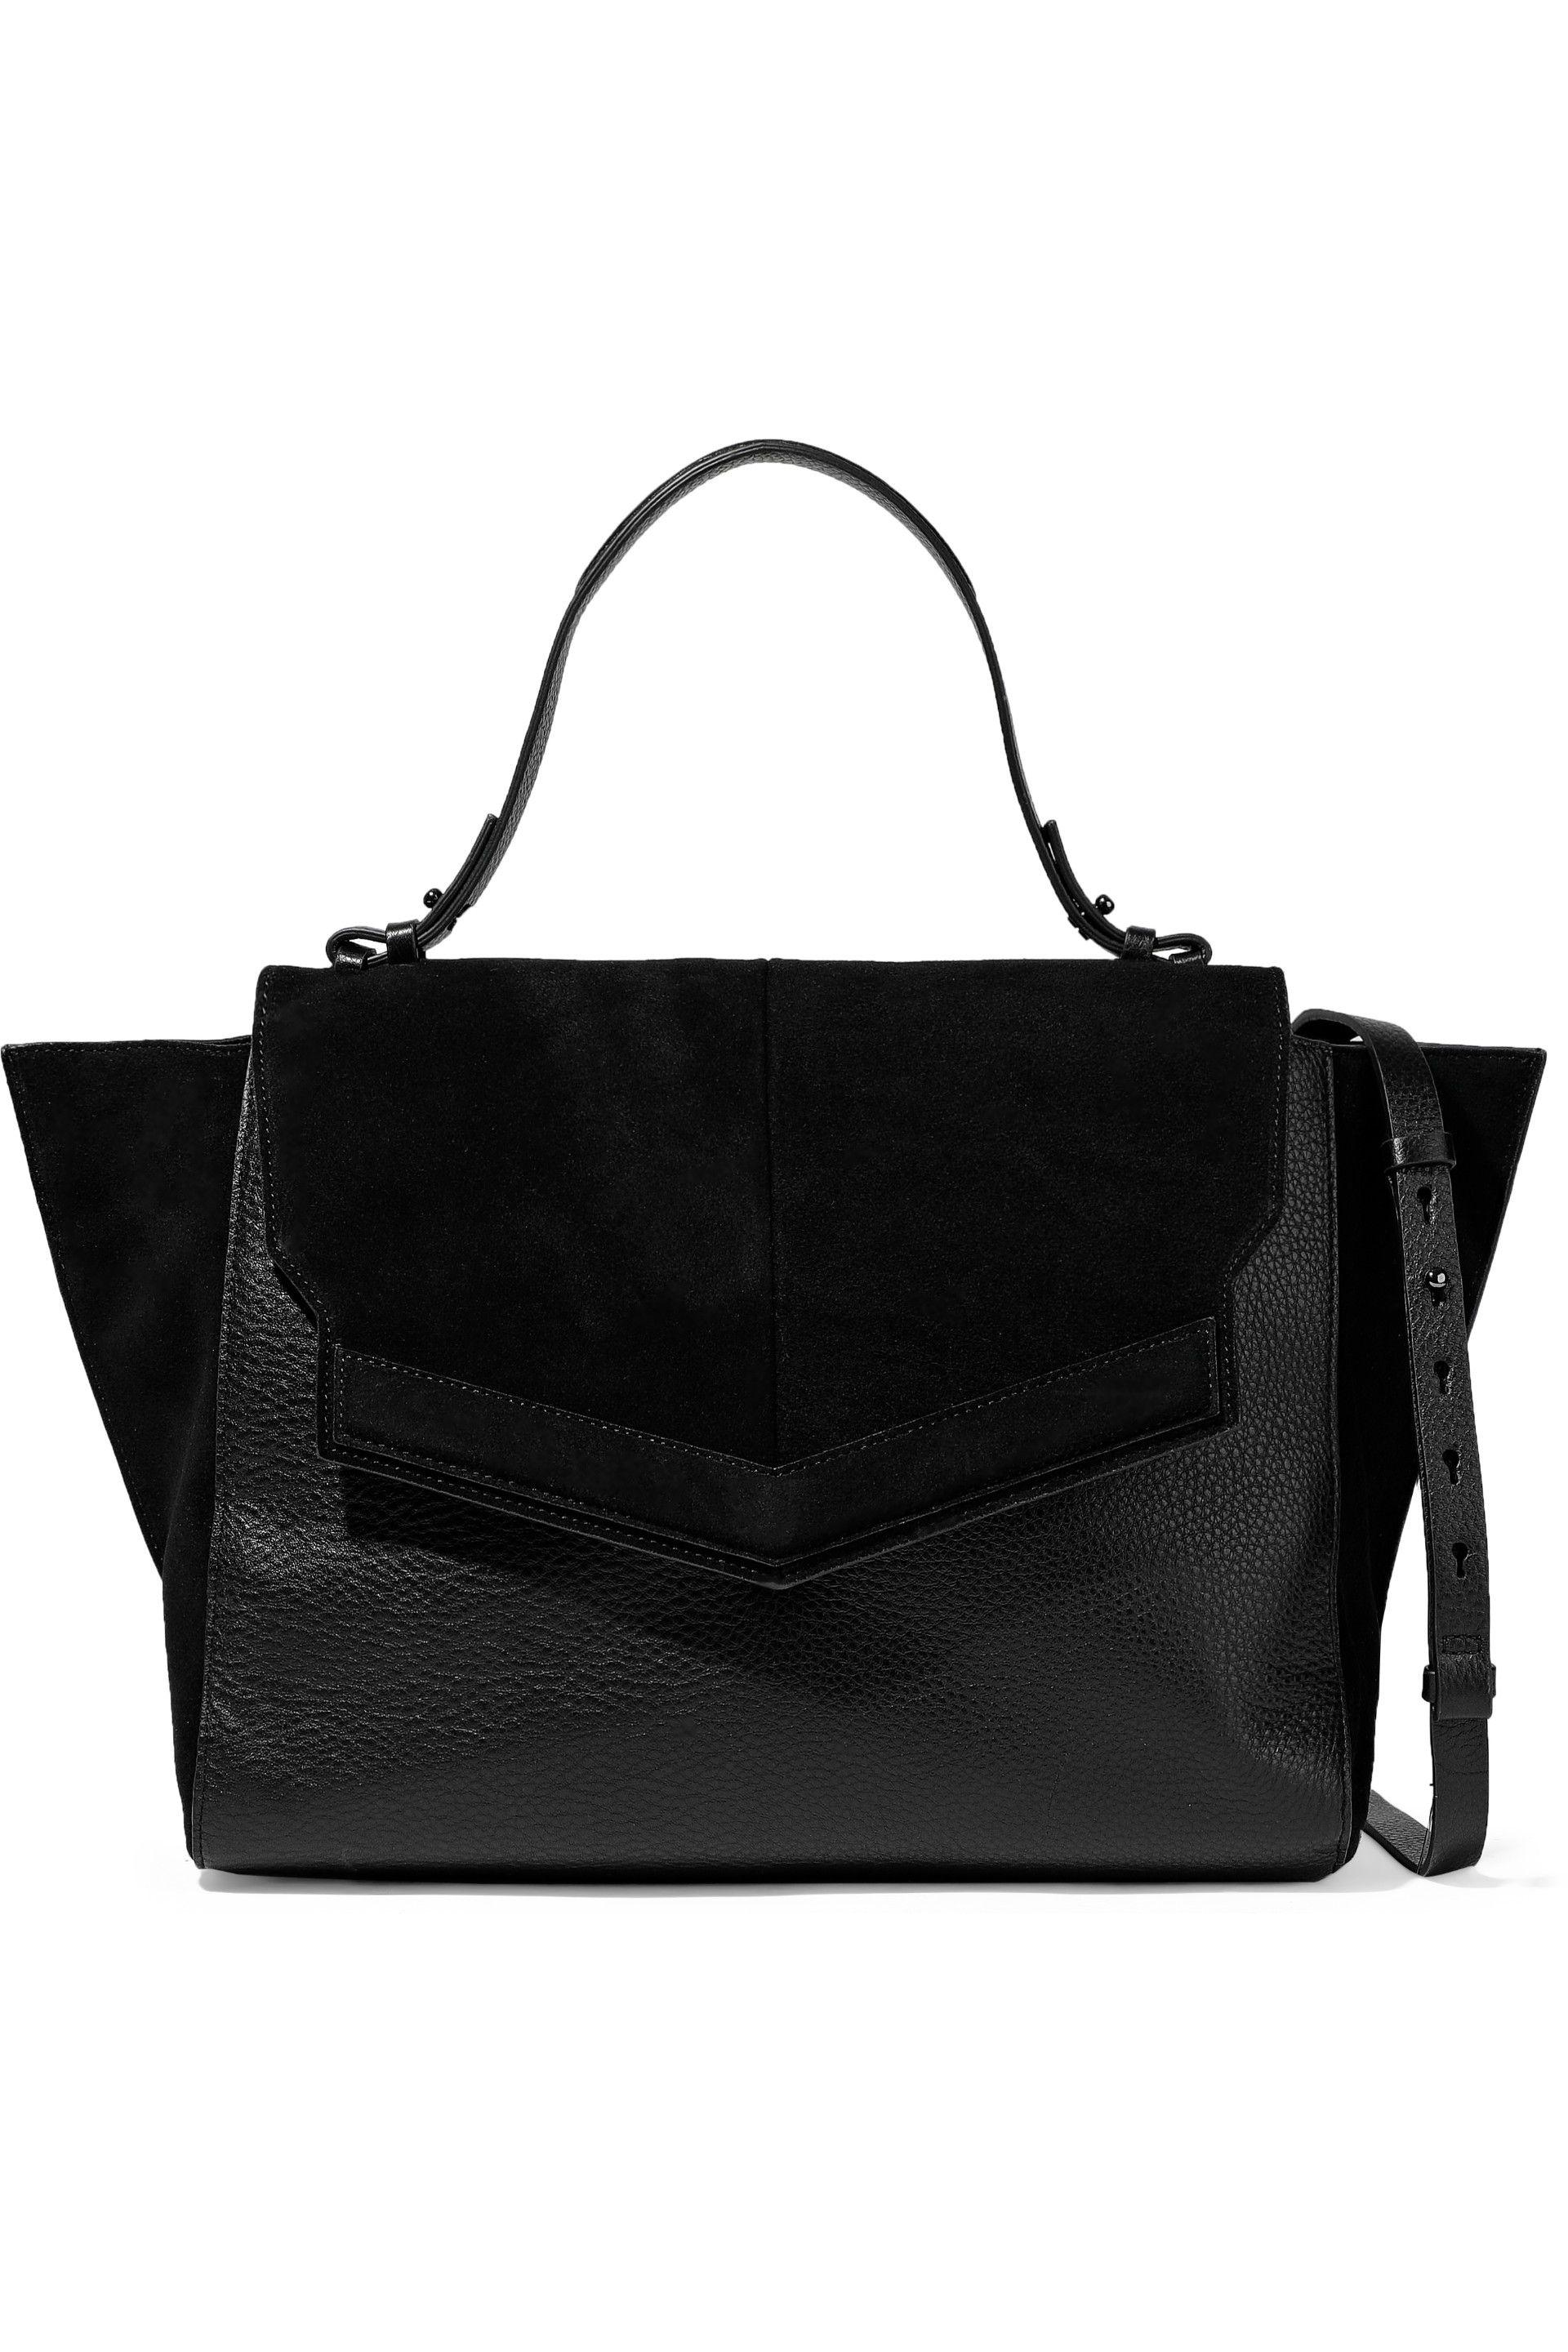 83b632599e30 Halston Suede And Pebbled-leather Shoulder Bag in Black - Lyst